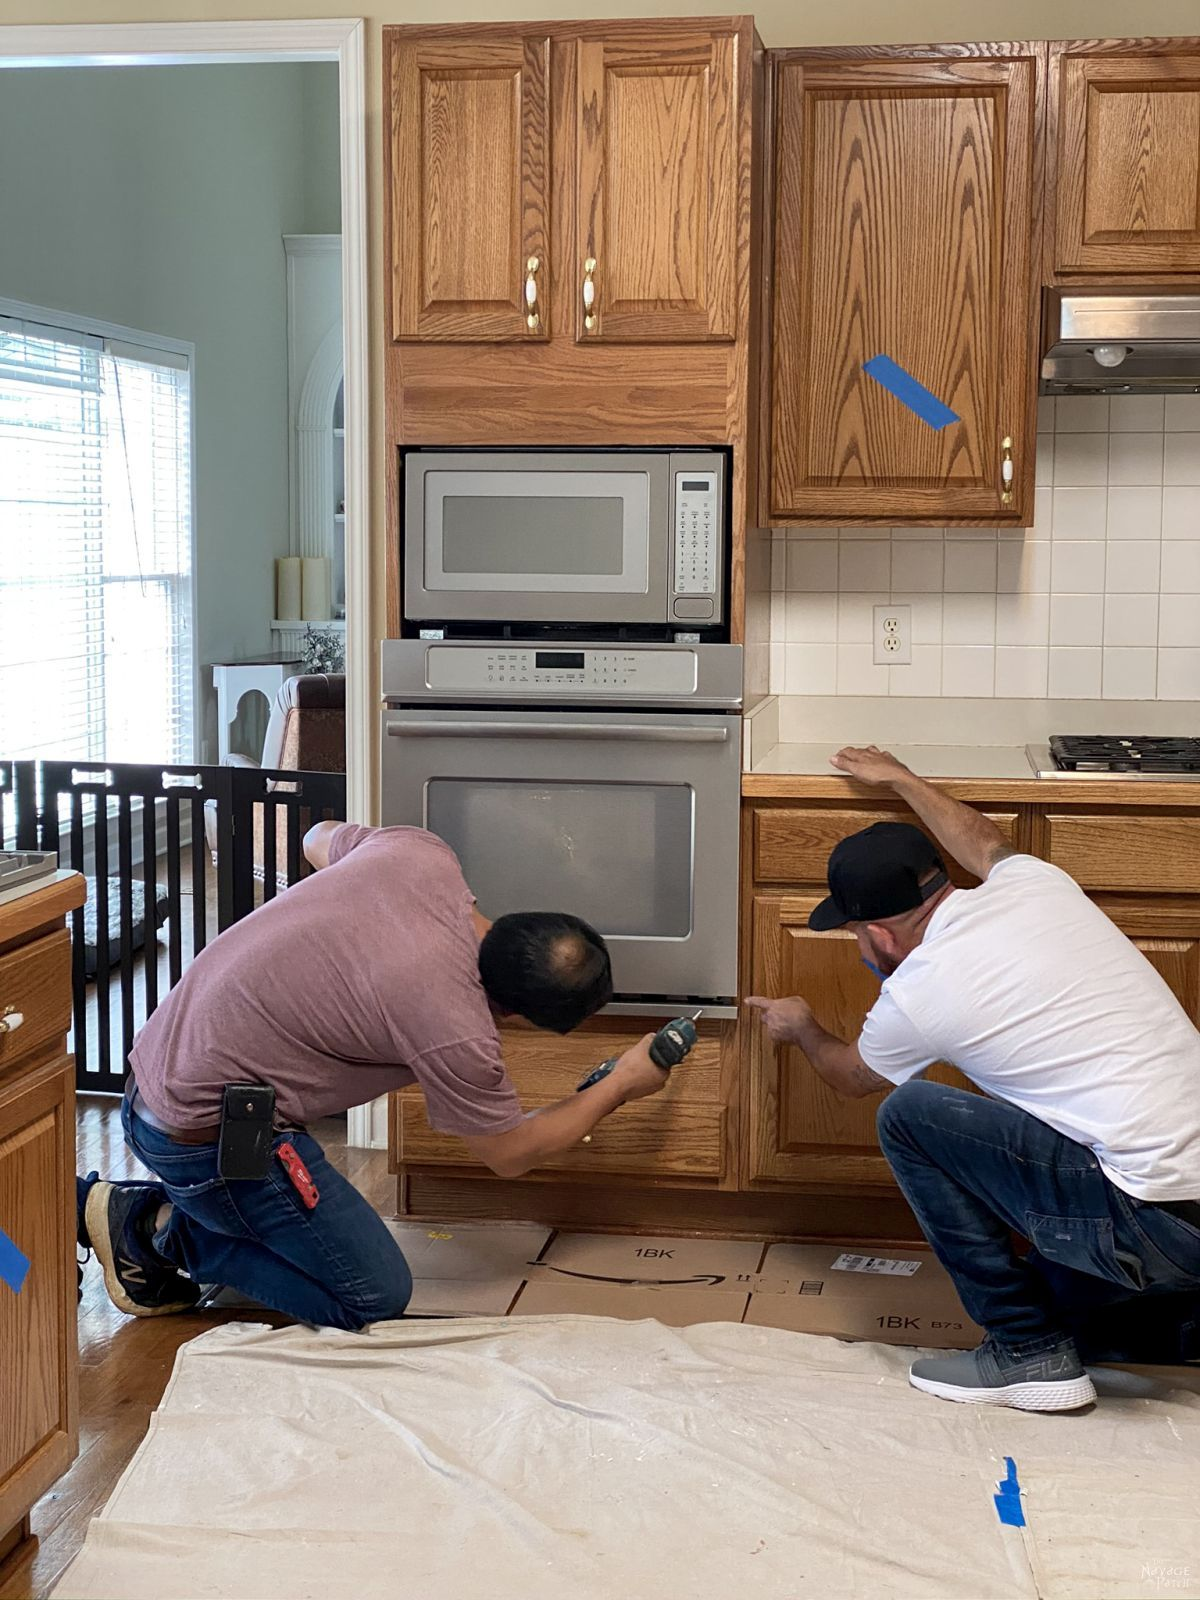 removing an oven during a kitchen demolition